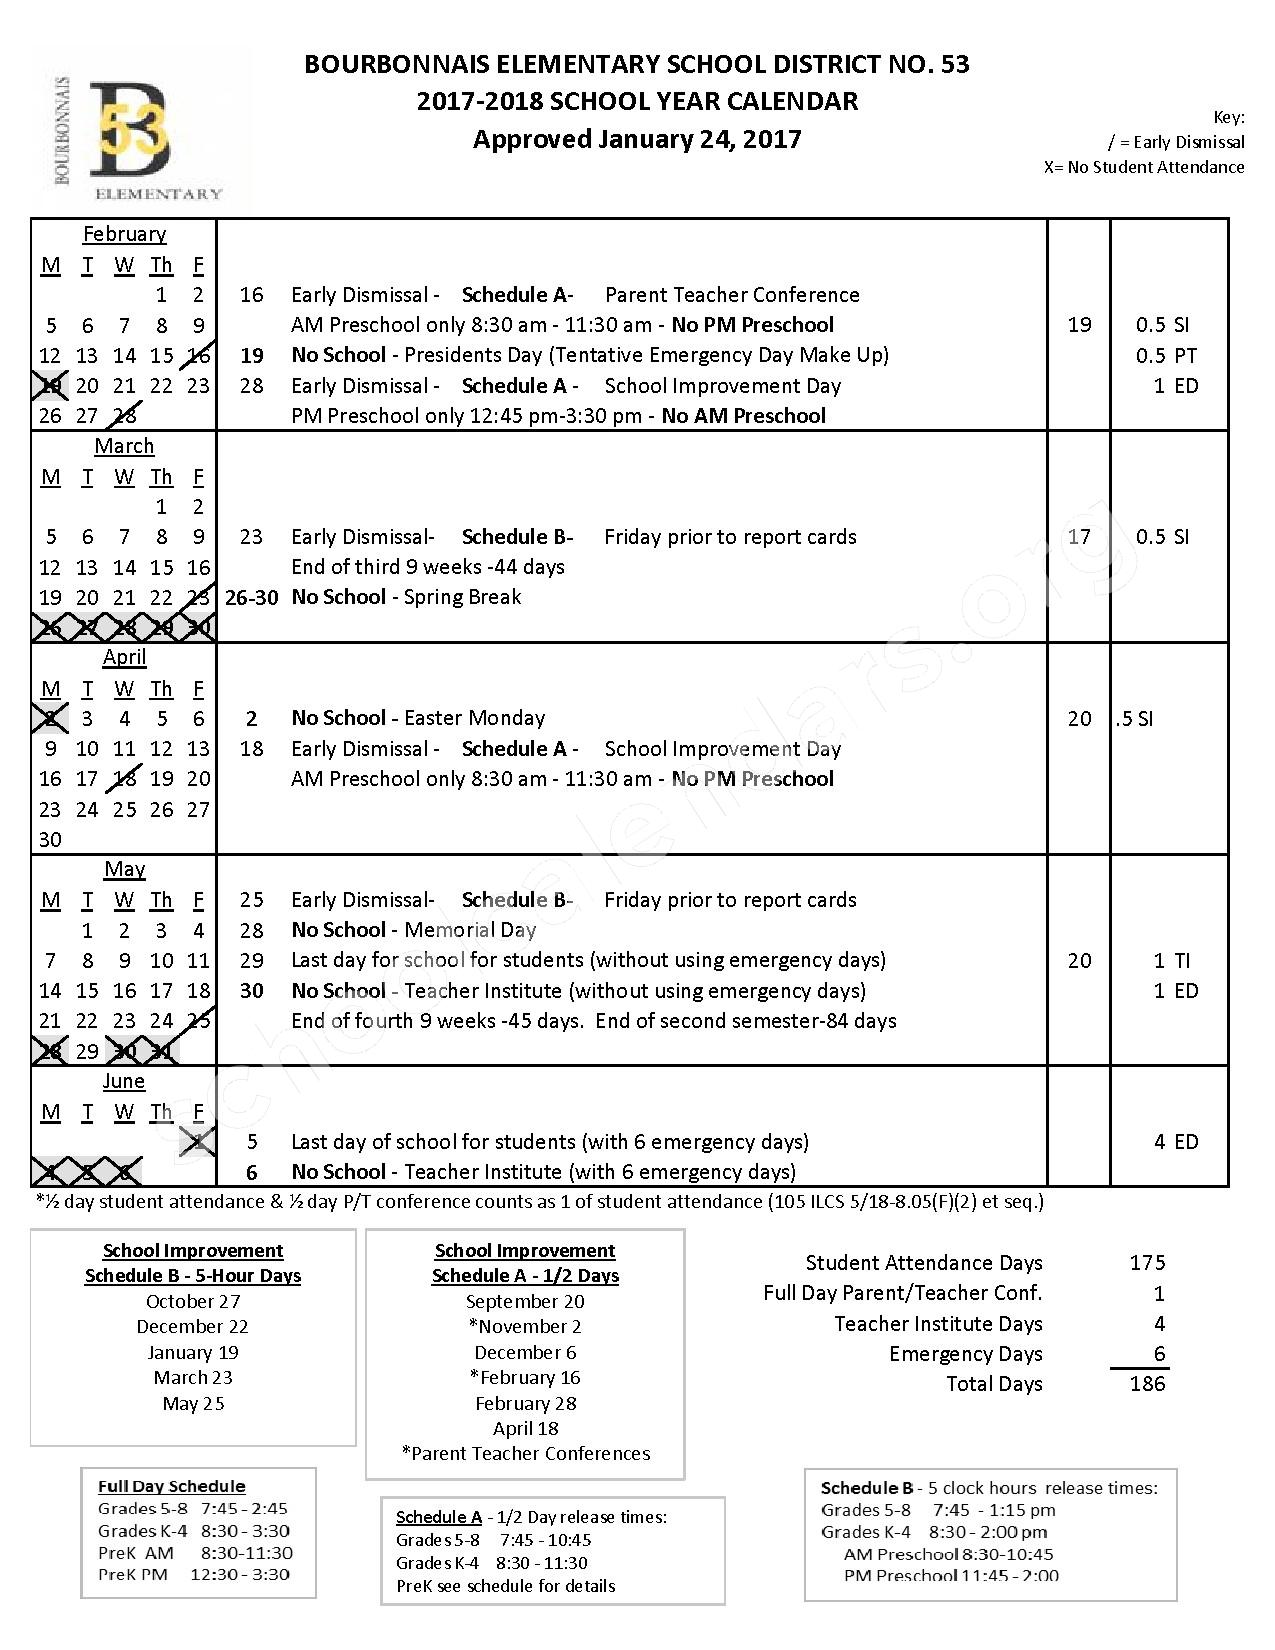 2017 - 2018 District Calendar – Bourbonnais Elementary School District 53 – page 2